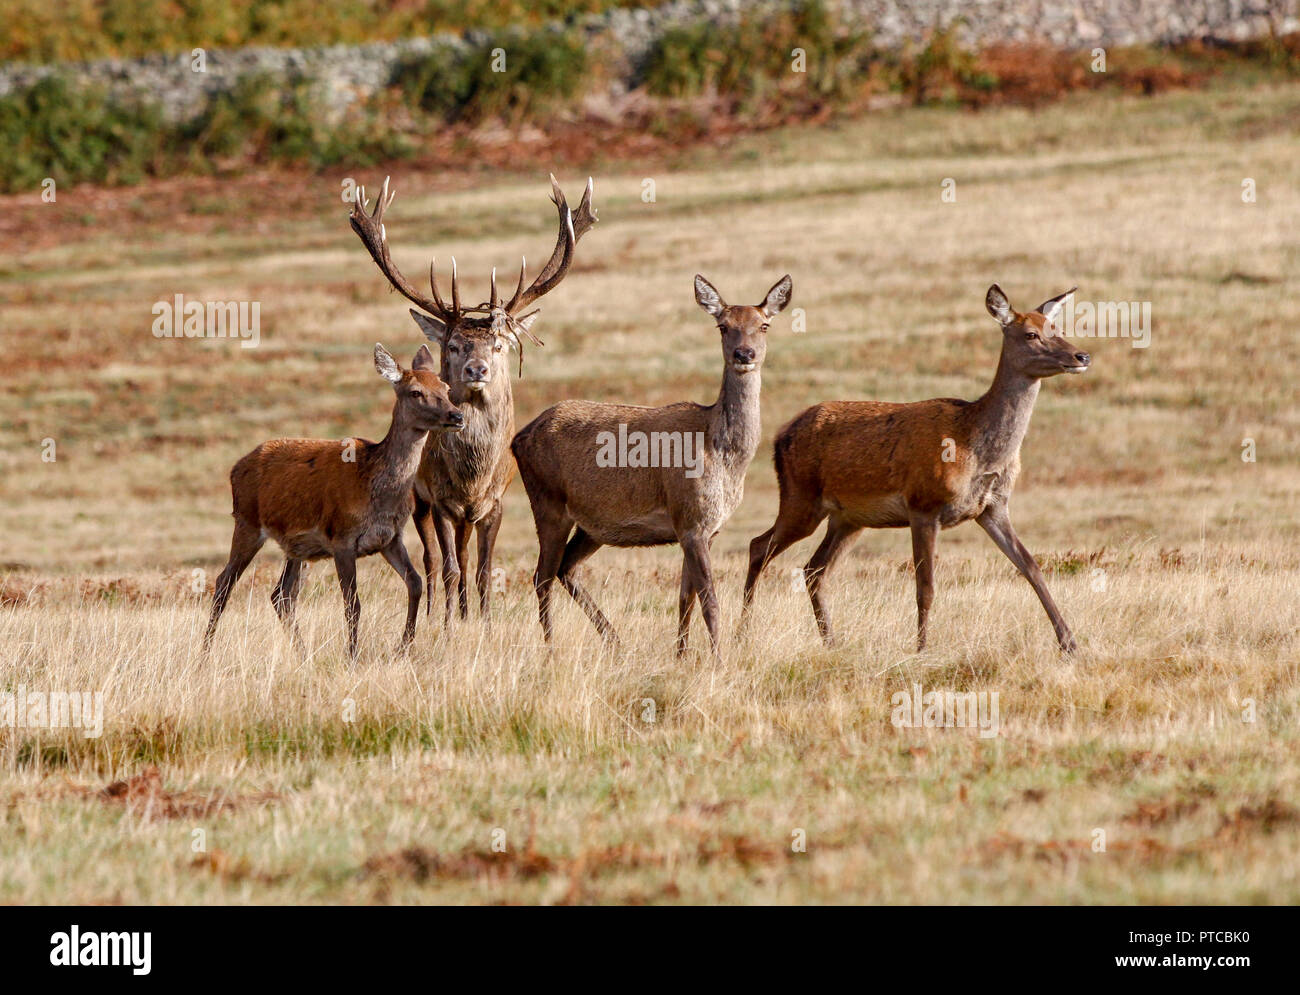 Red Deer (Cervus elaphus) - Stock Image